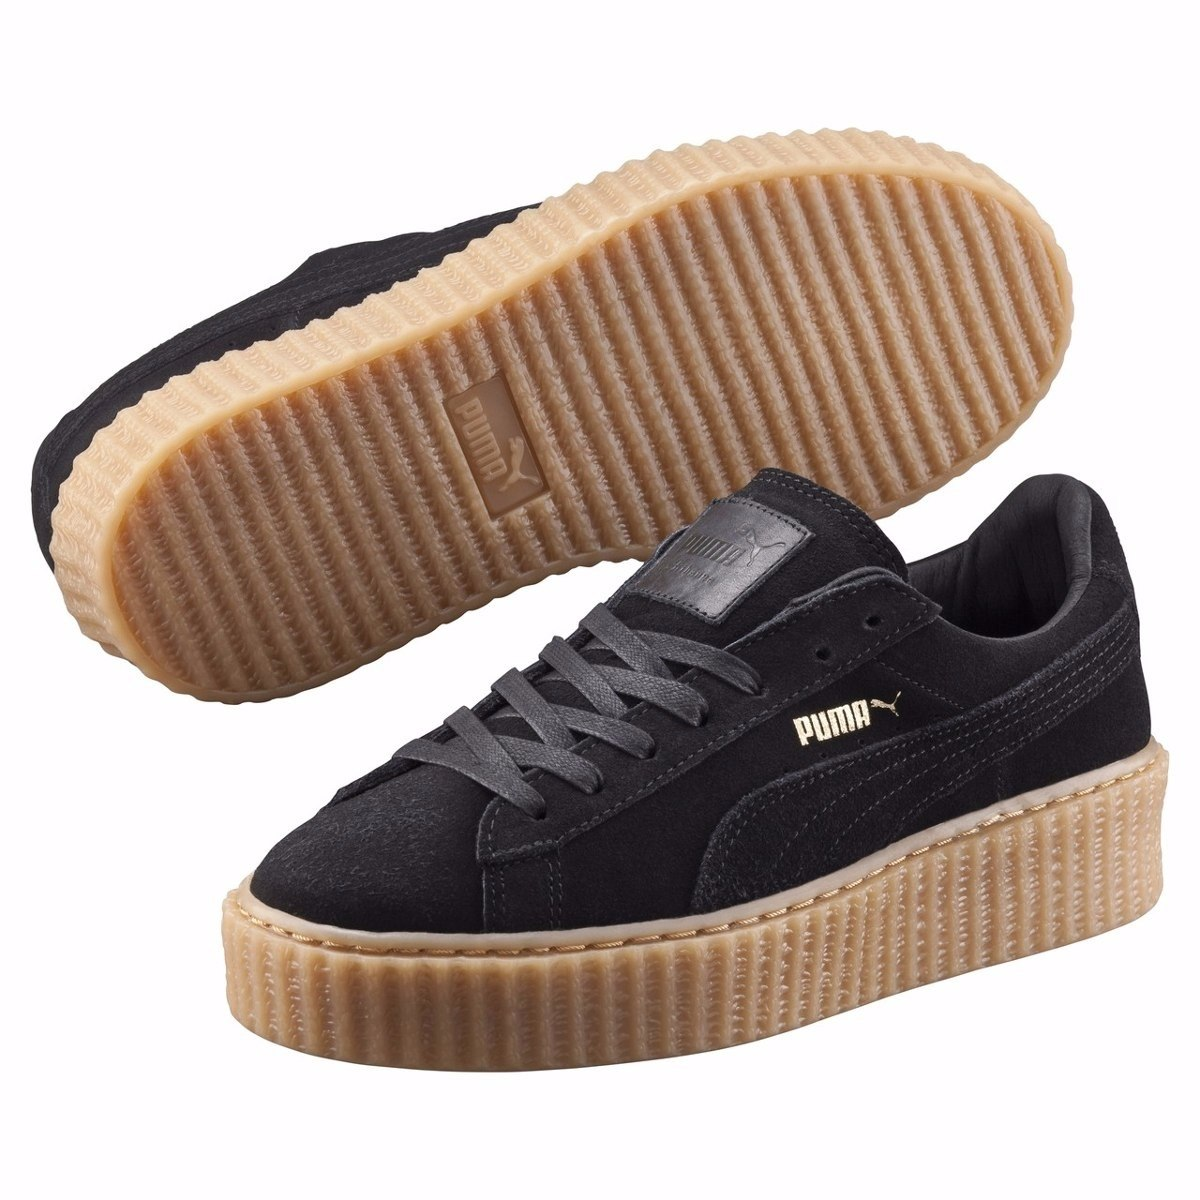 391be885b9 Tênis Puma Suede Creeper By Rihanna Fenty Veludo 14 - LeveShoes